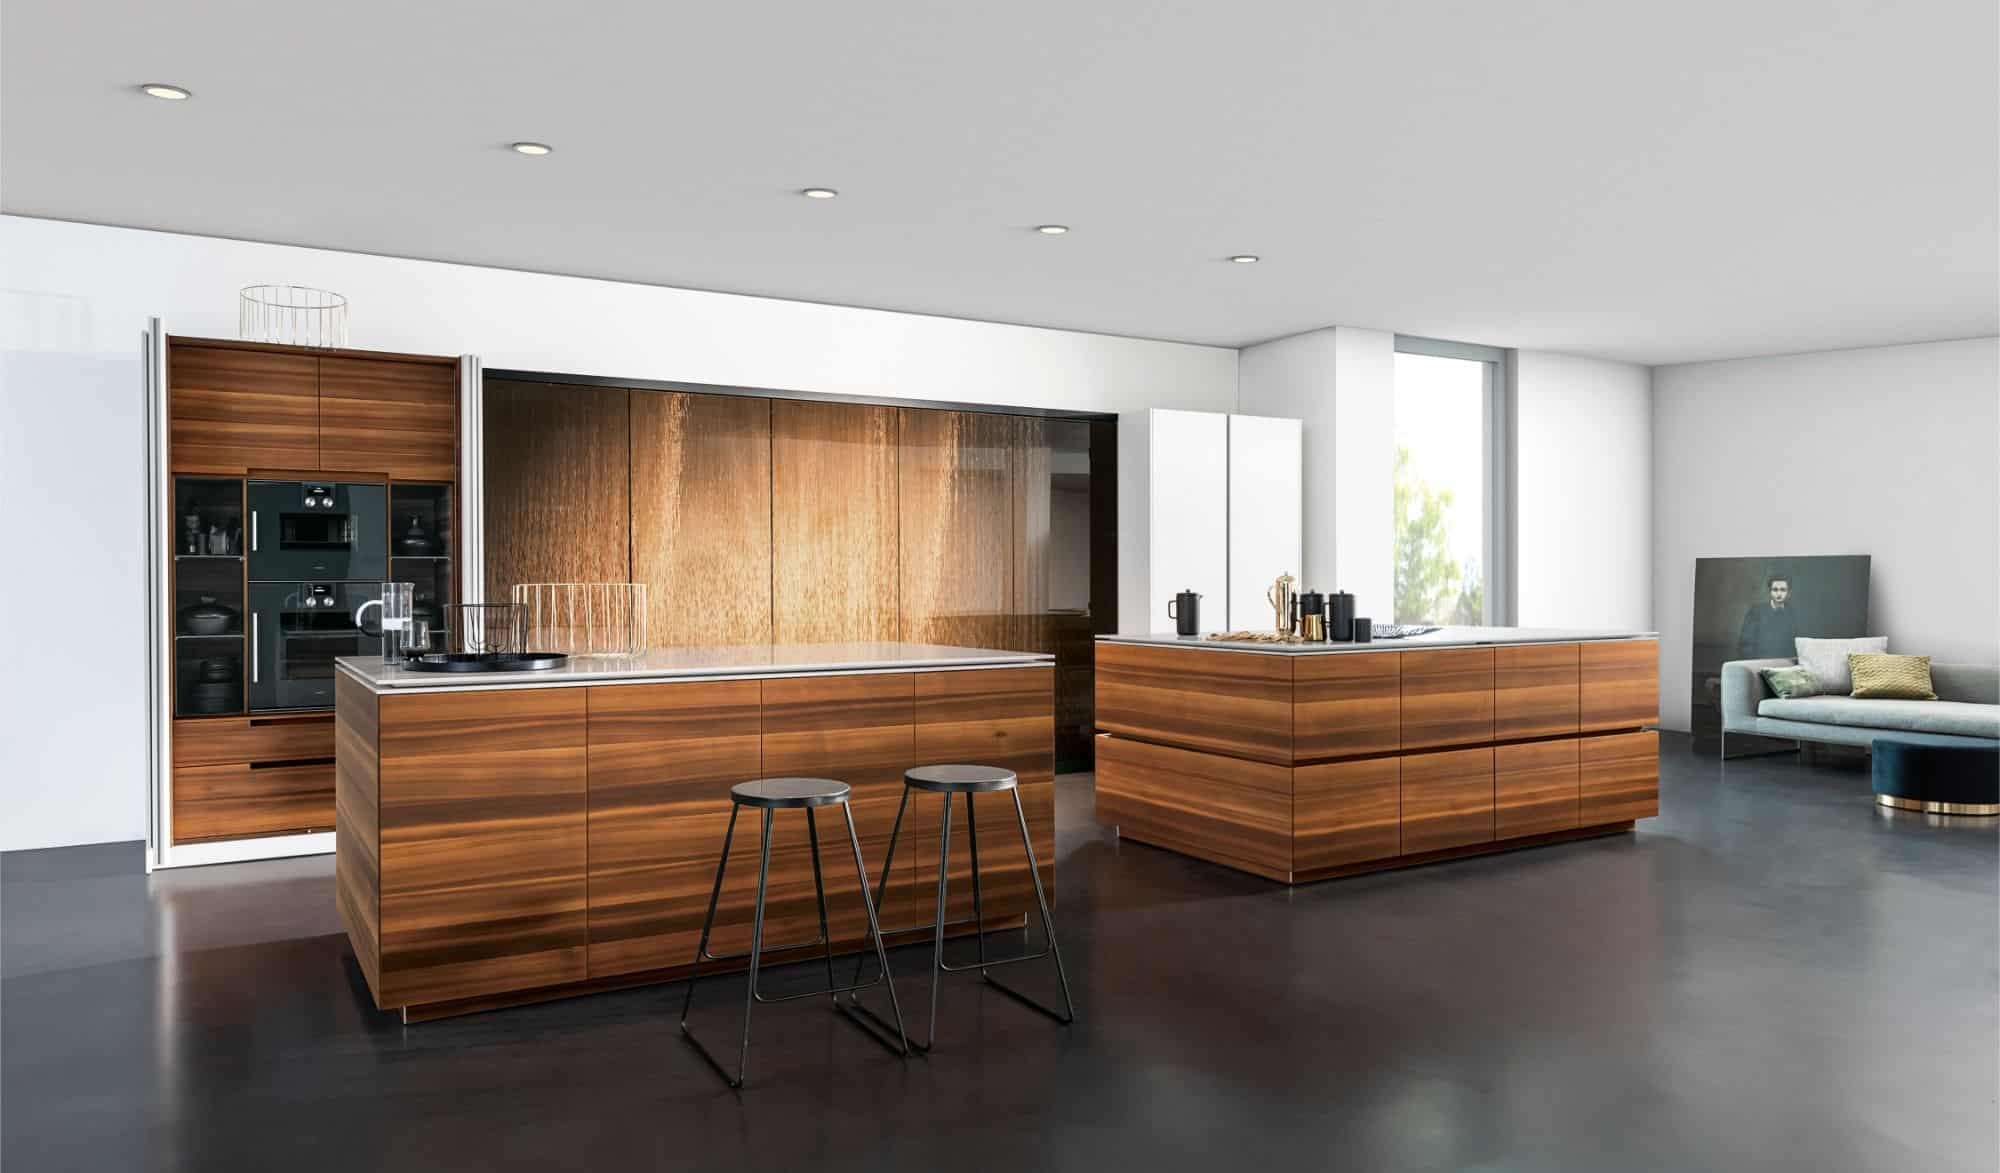 eggersmann larch wood veneer islands featuring moving worktops from the motion collection with with the works tall cabinets with interlink bronze finish